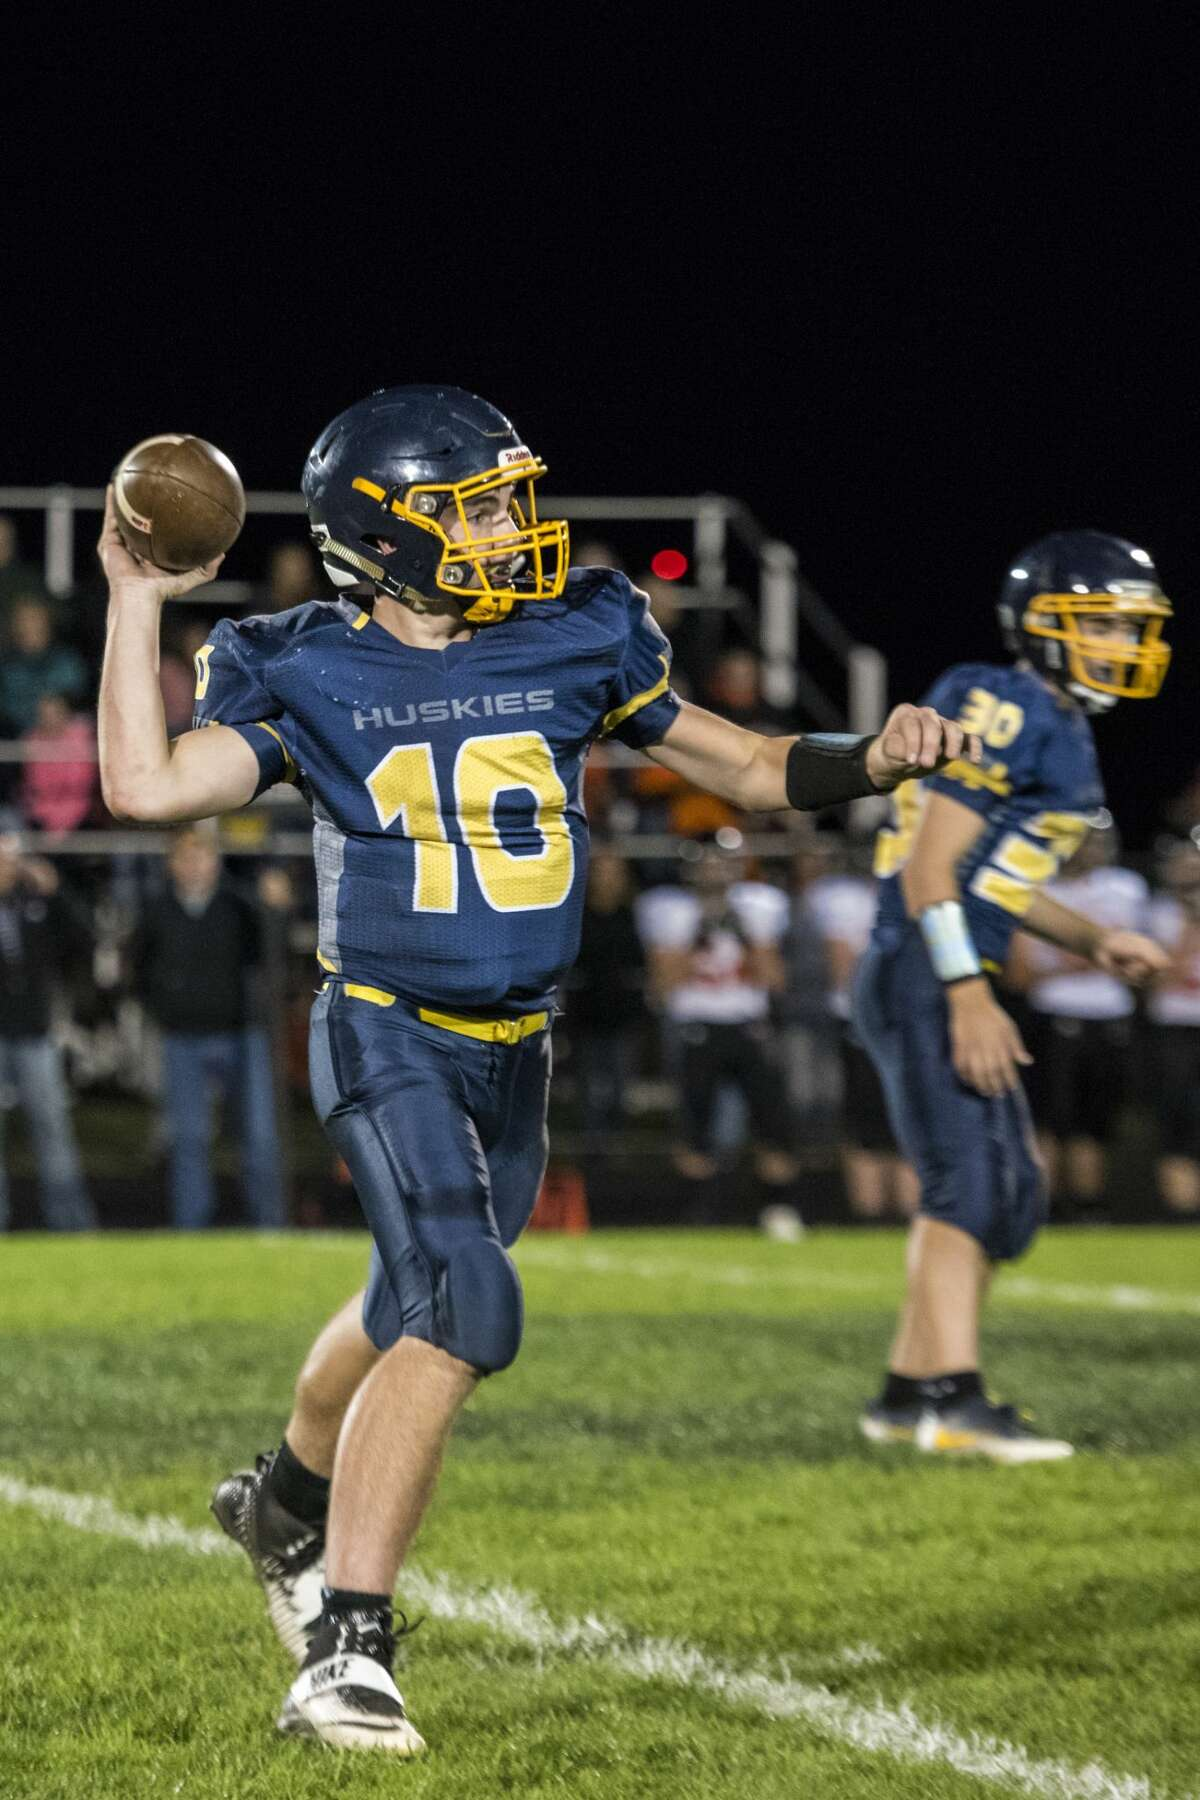 Breckenridge sophomore Carter Staley prepares to throw a pass during a game against the Merrill Vandals at Breckenridge High School on Friday.